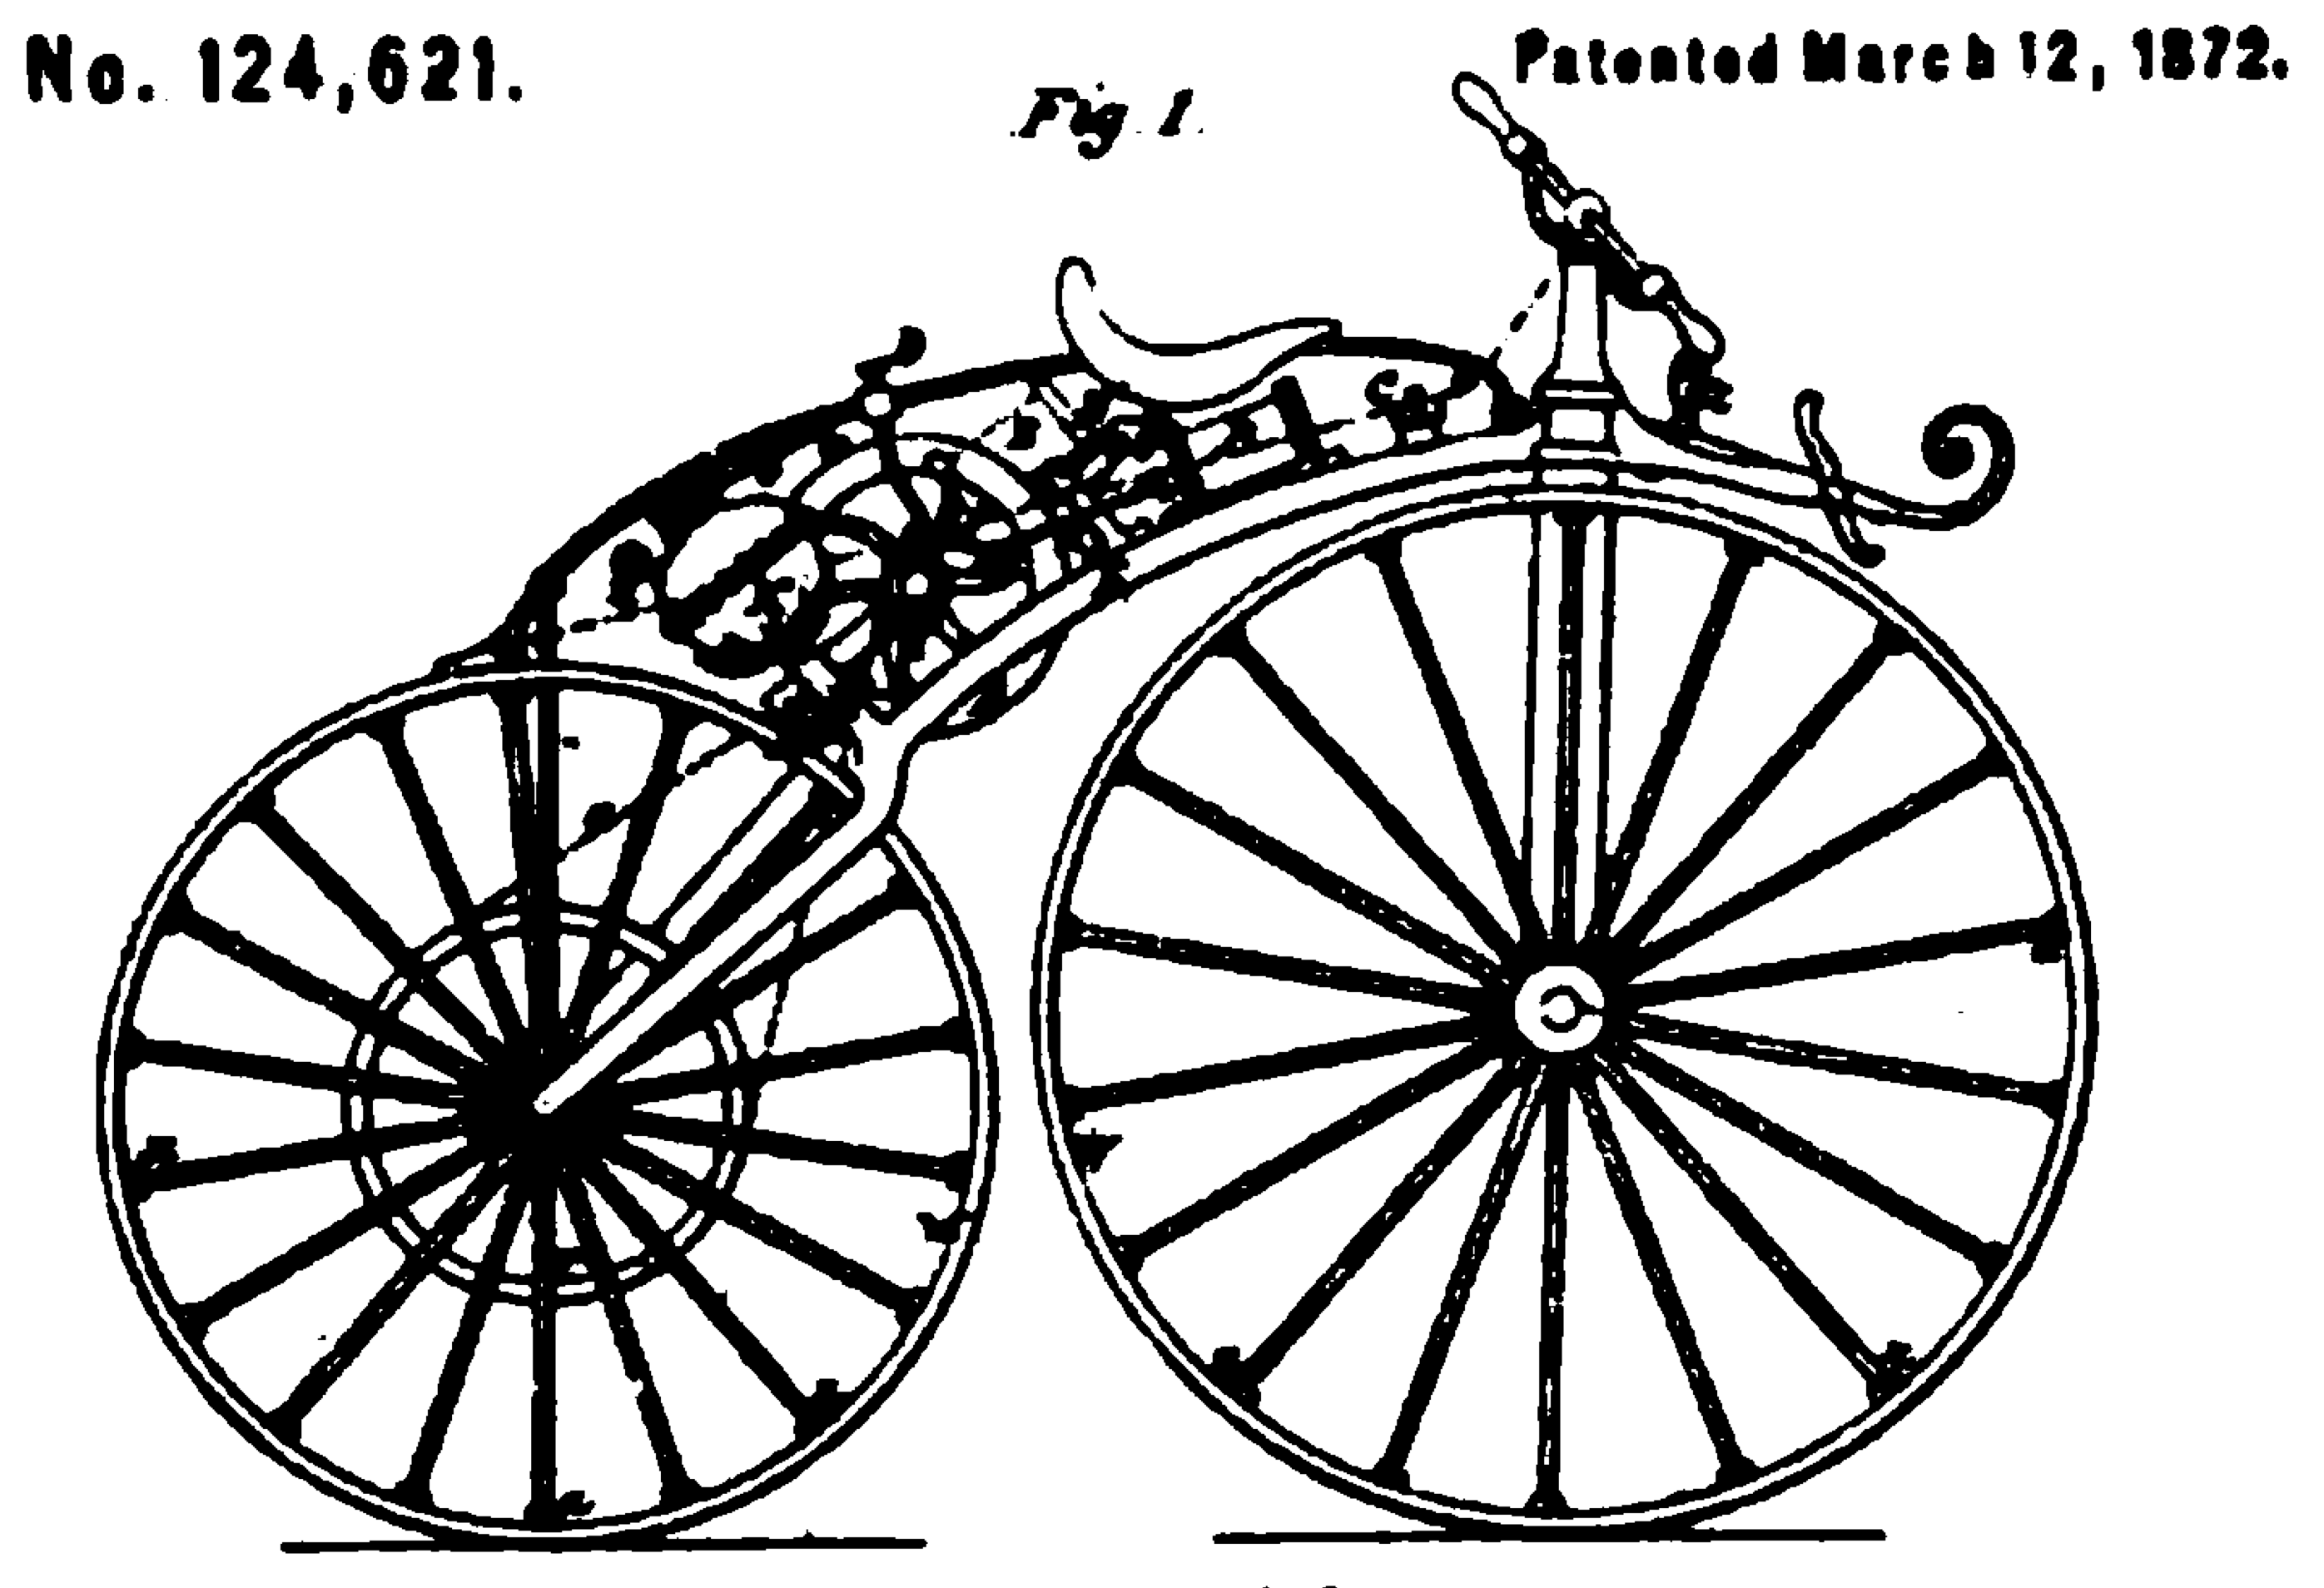 An illustration for a patent application for an improved Michaux-Perreaux steam velocipede filed with the U.S. Patent office on March 12, 1872.